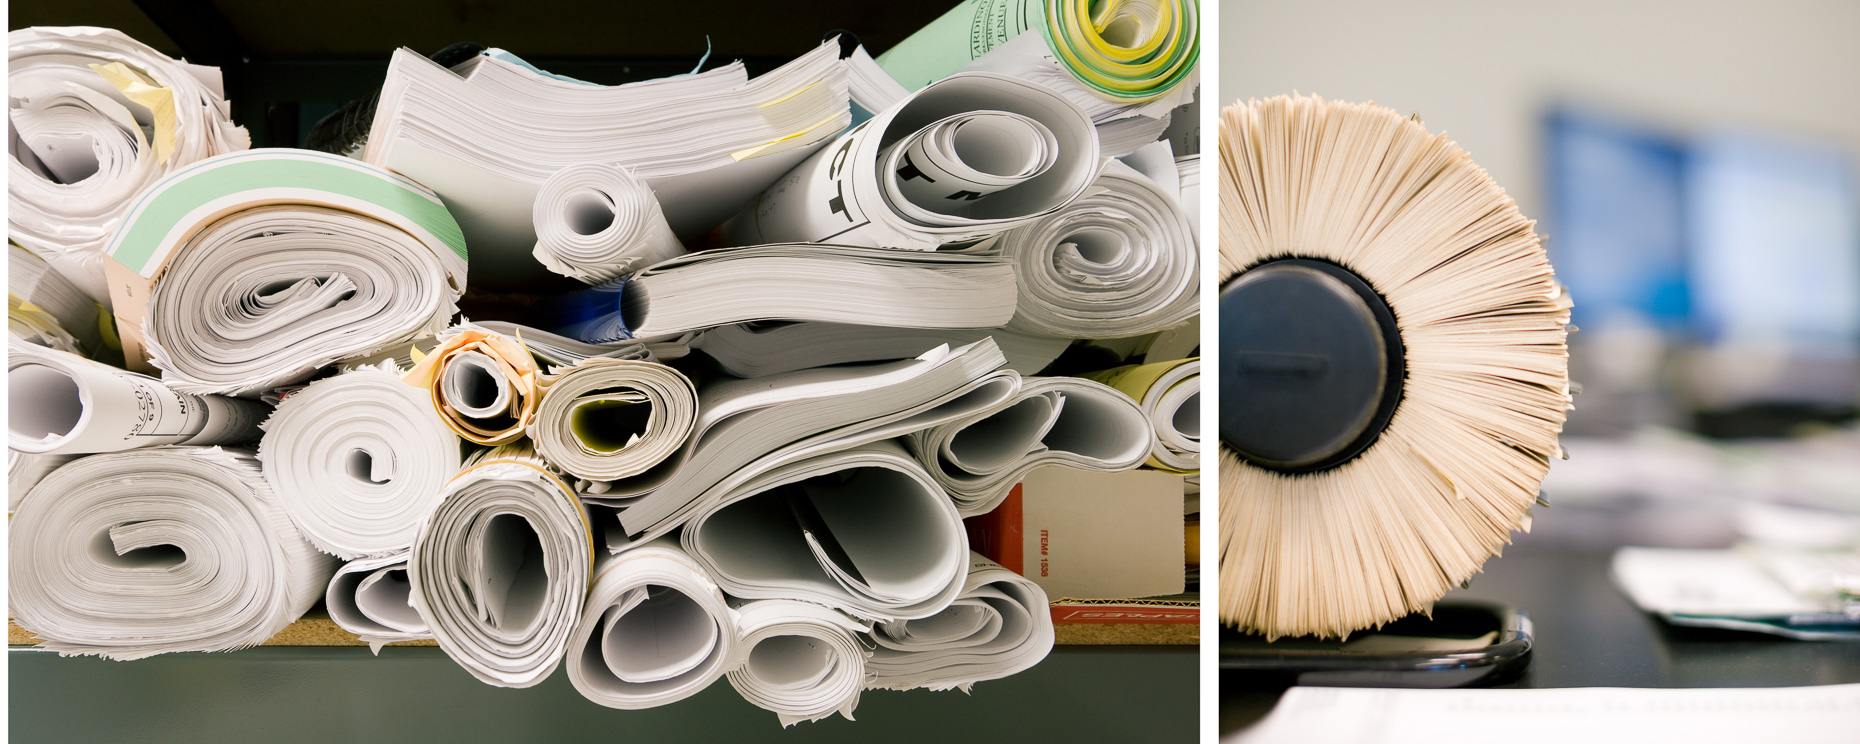 Rolls of blueprints and detail of Rolodex in office. David Zaitz Photography.